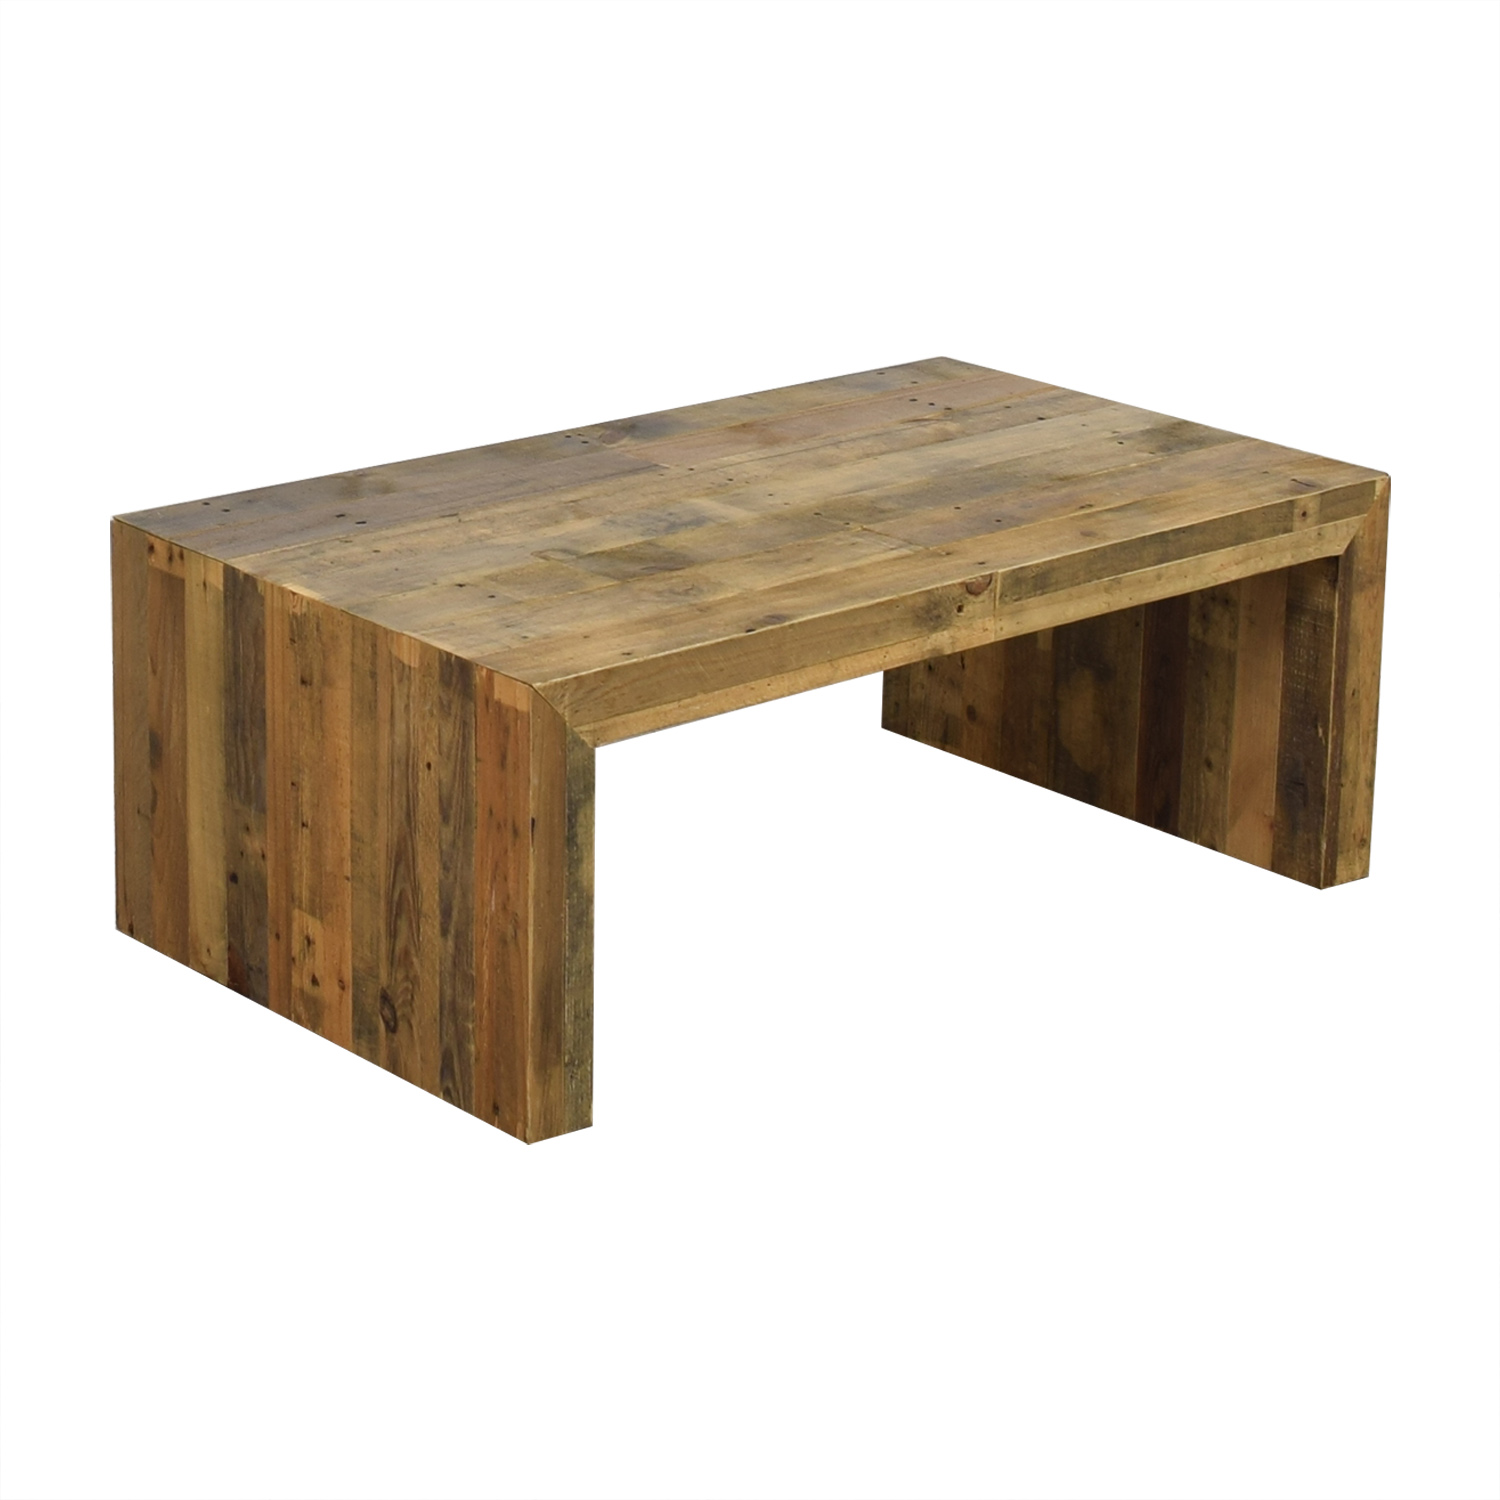 West Elm West Elm Emmerson Reclaimed Coffee Table nyc